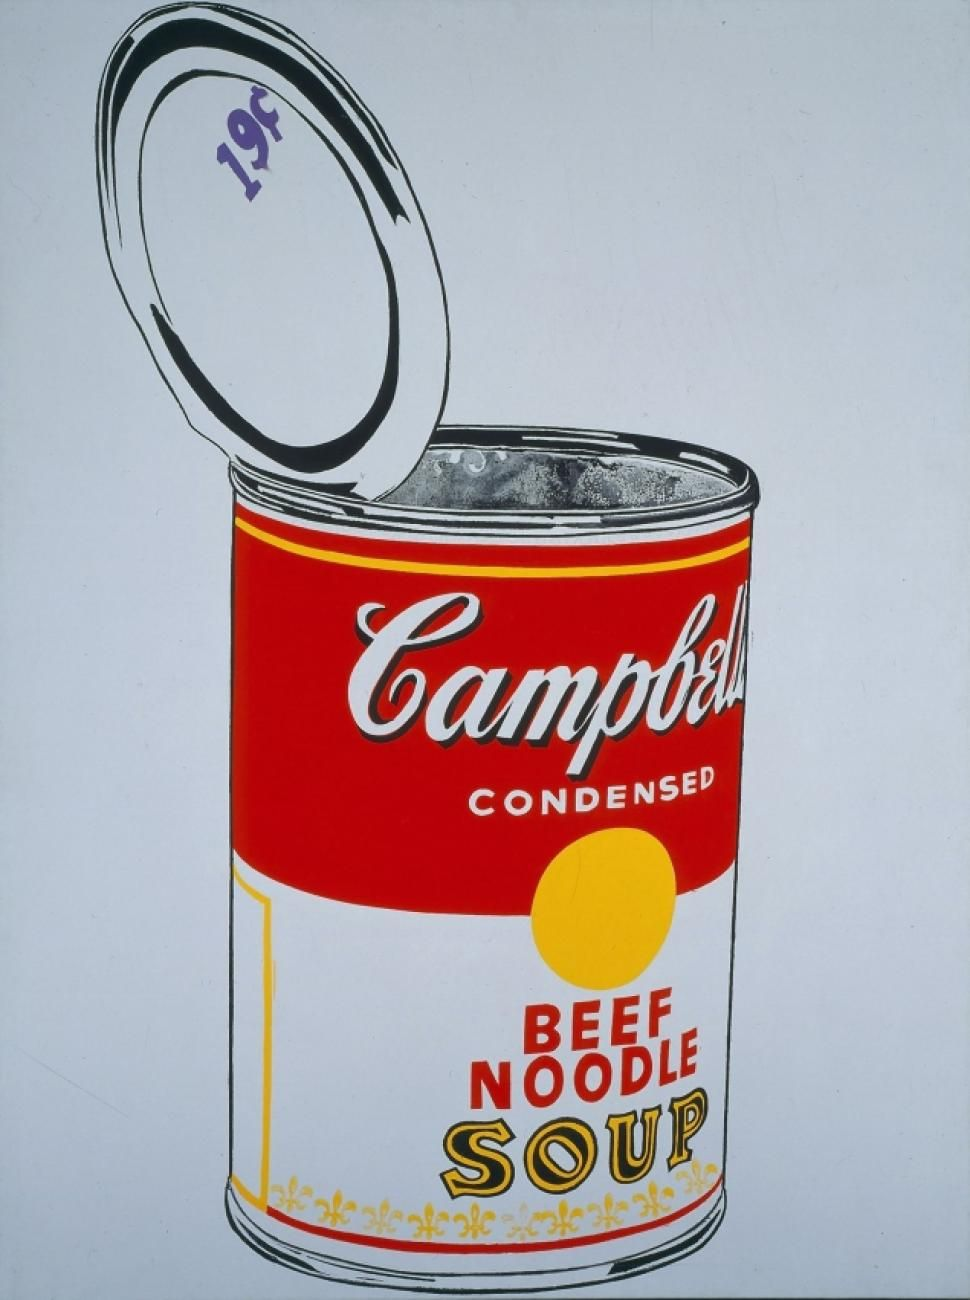 Exclusive Andy Warhol S Upper East Side Townhouse Sells For 5 5m Andy Warhol Warhol Campbell S Soup Cans